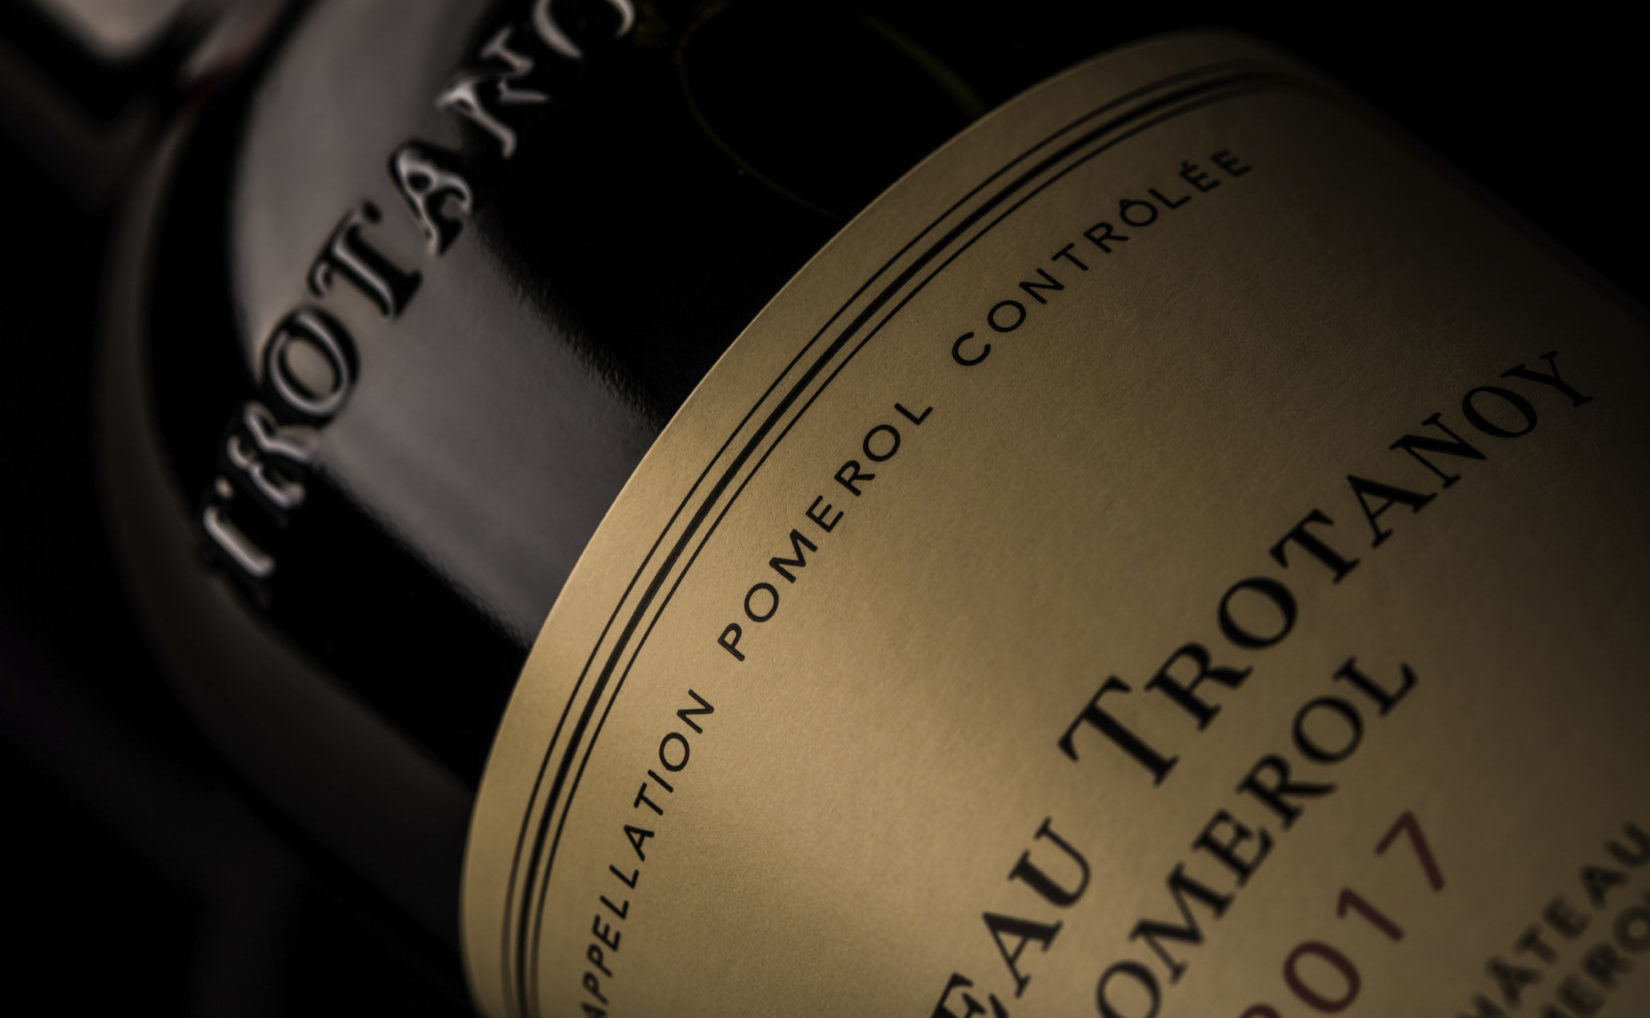 New Release: Château Trotanoy 2017